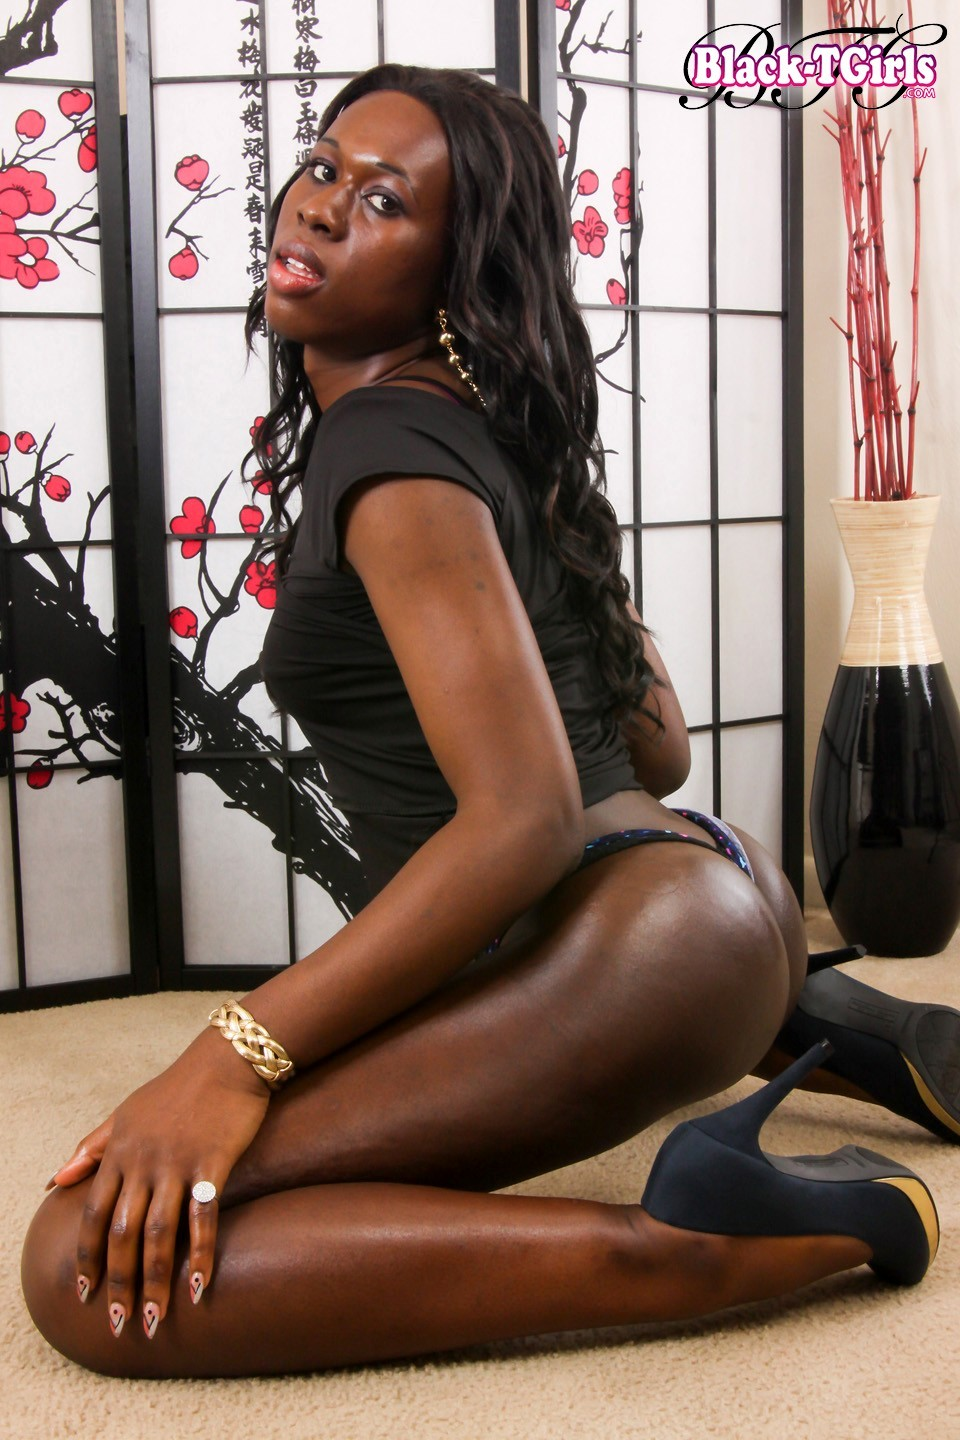 voodoo inviting black godess posing and teasing